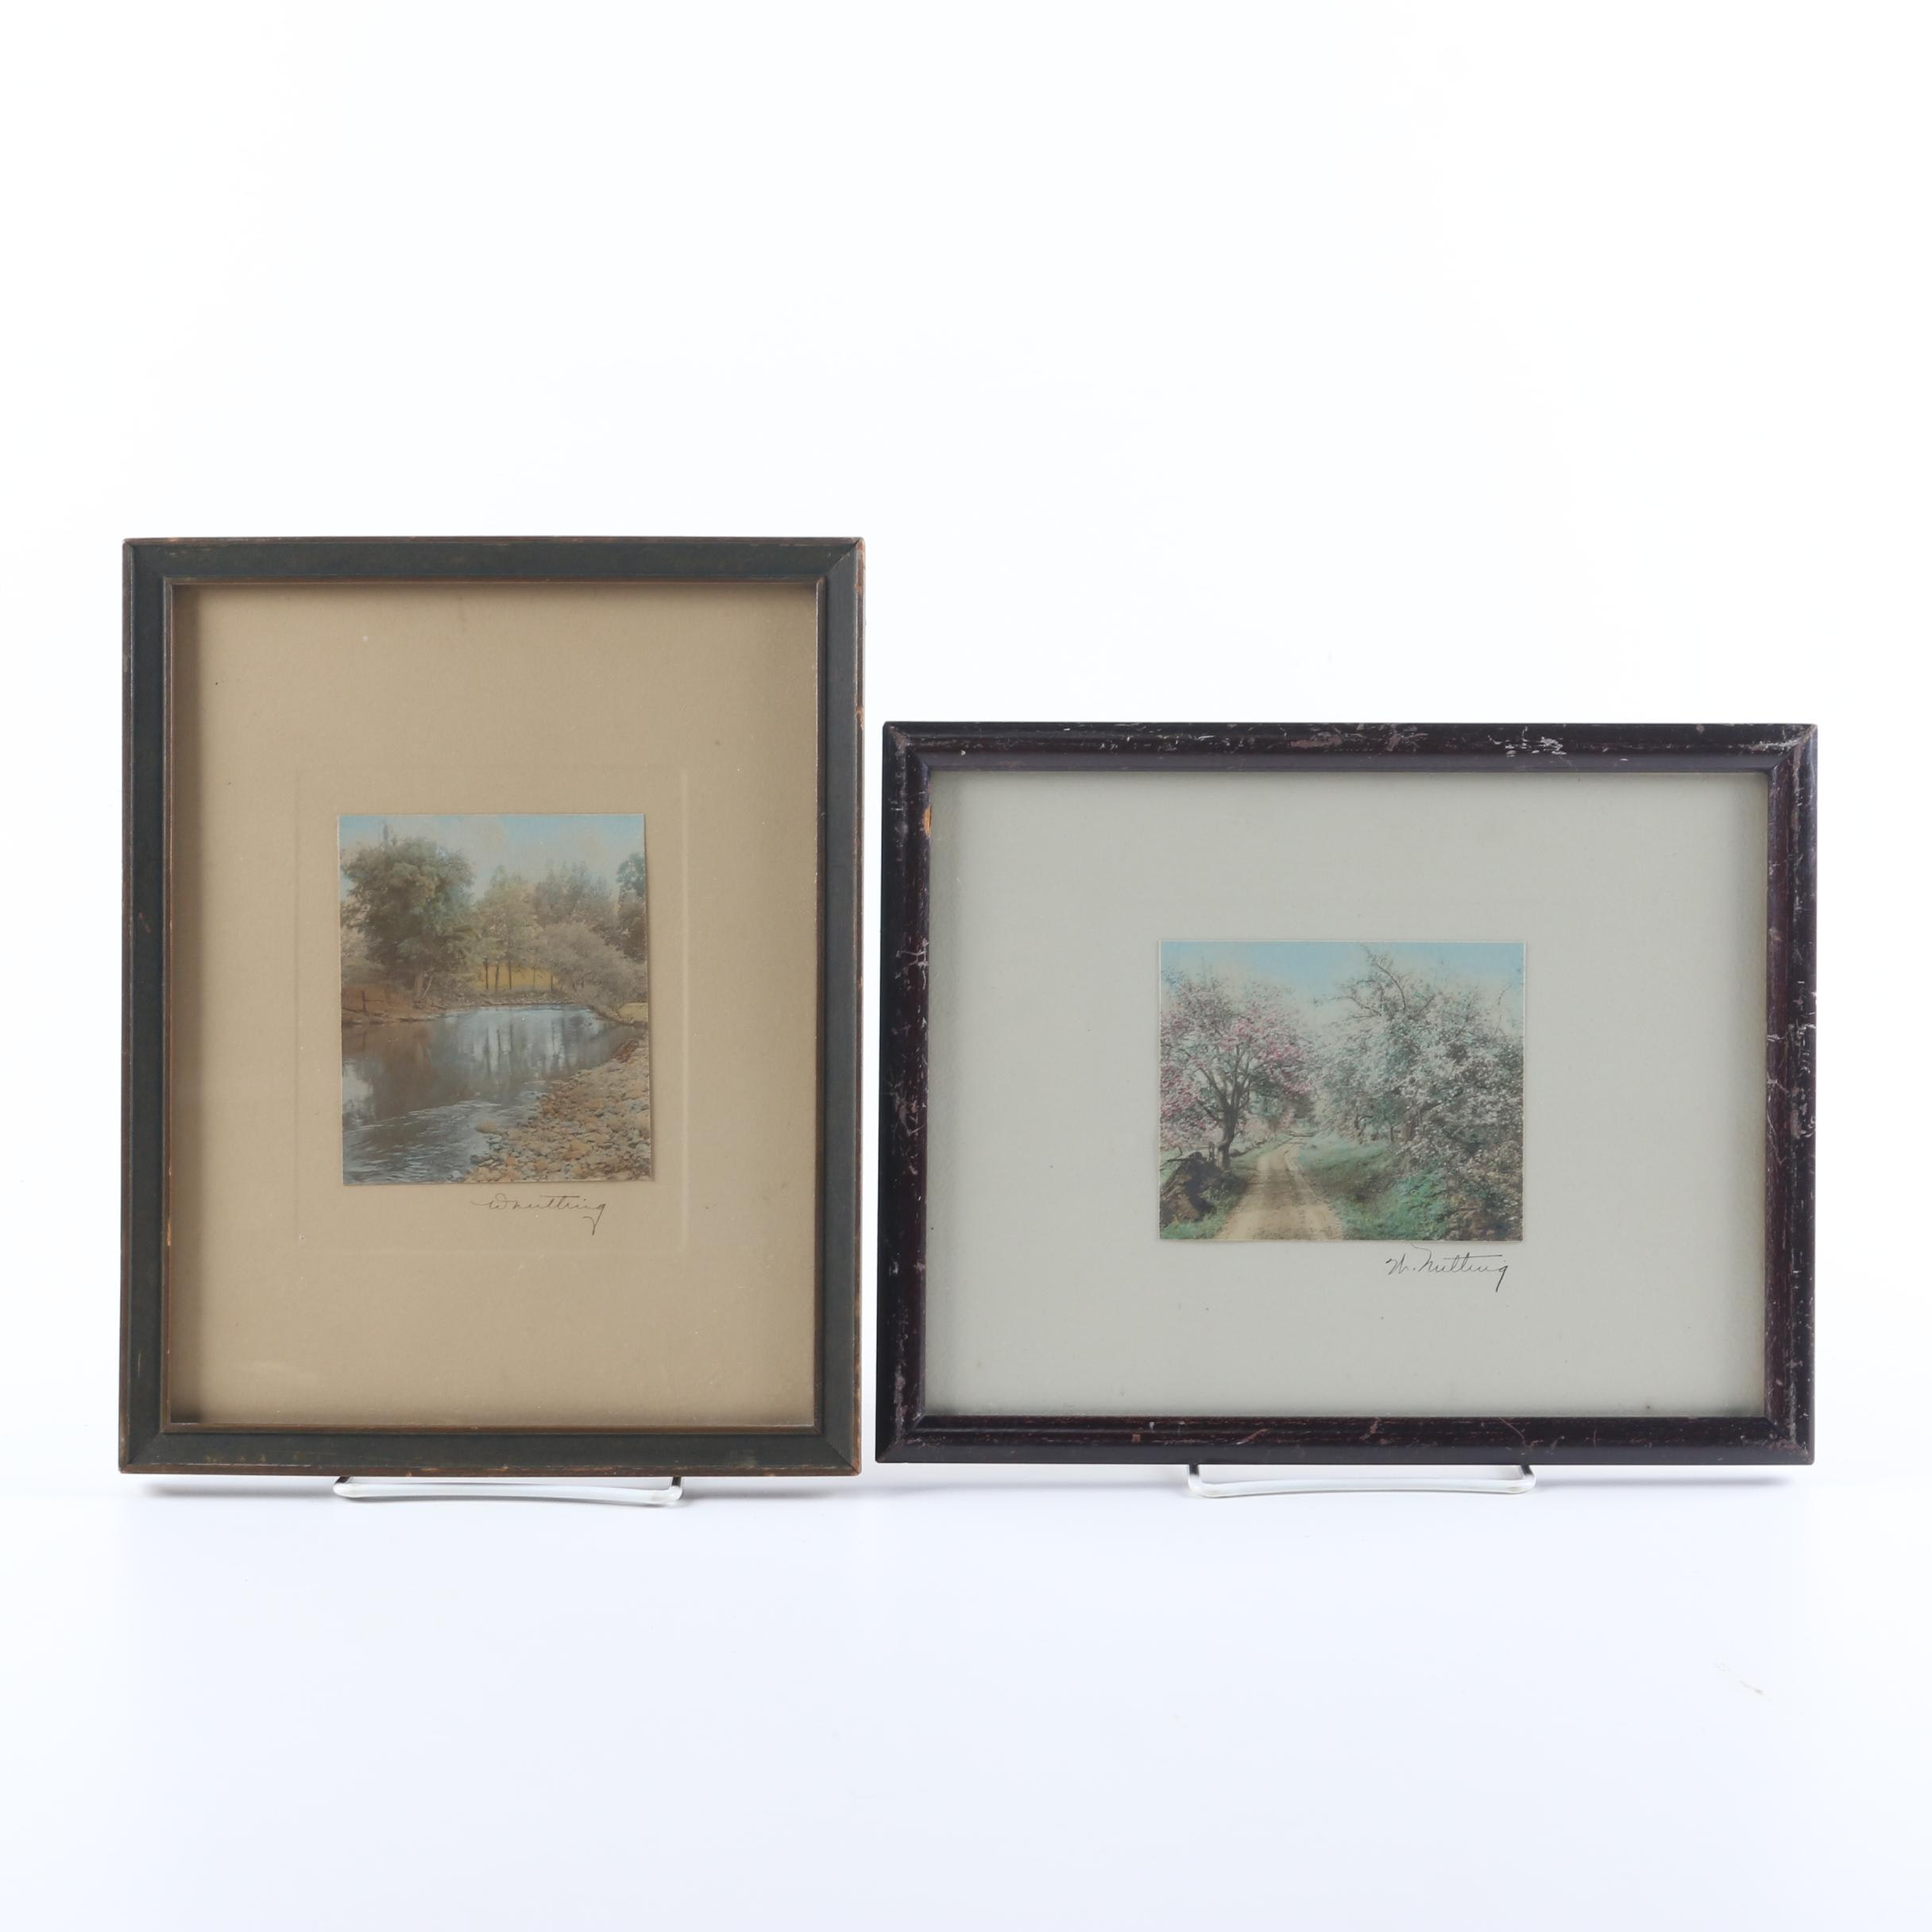 Wallace Nutting Hand Colored Landscape Photographs